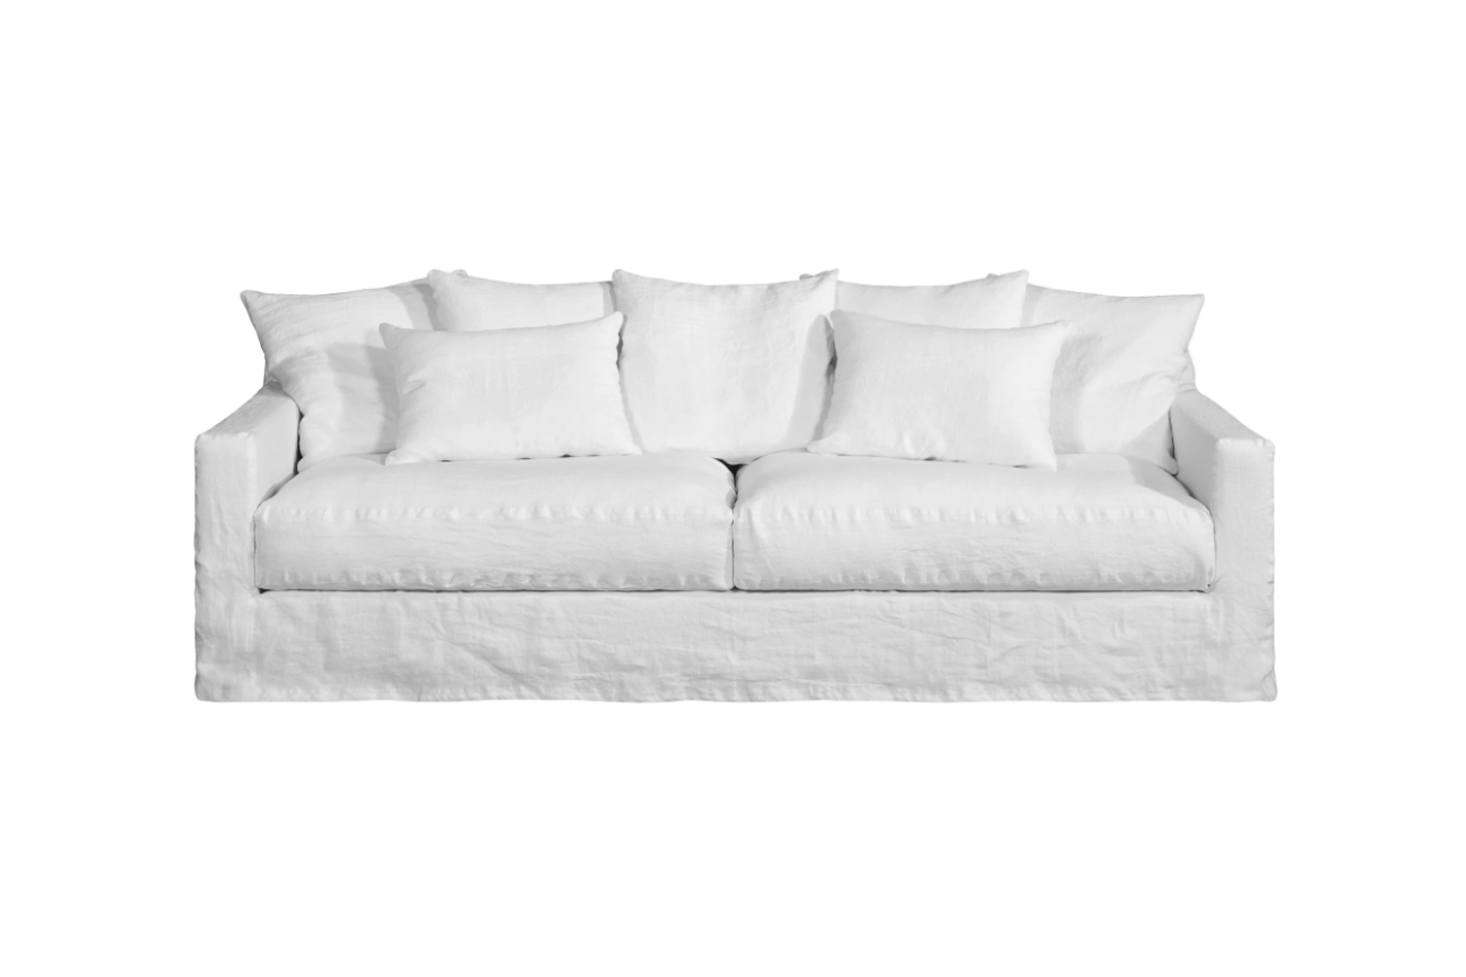 sofa set below 3000 in hyderabad cheap upholstery dubai 10 easy pieces 39first sofas 39 under 3 000 remodelista